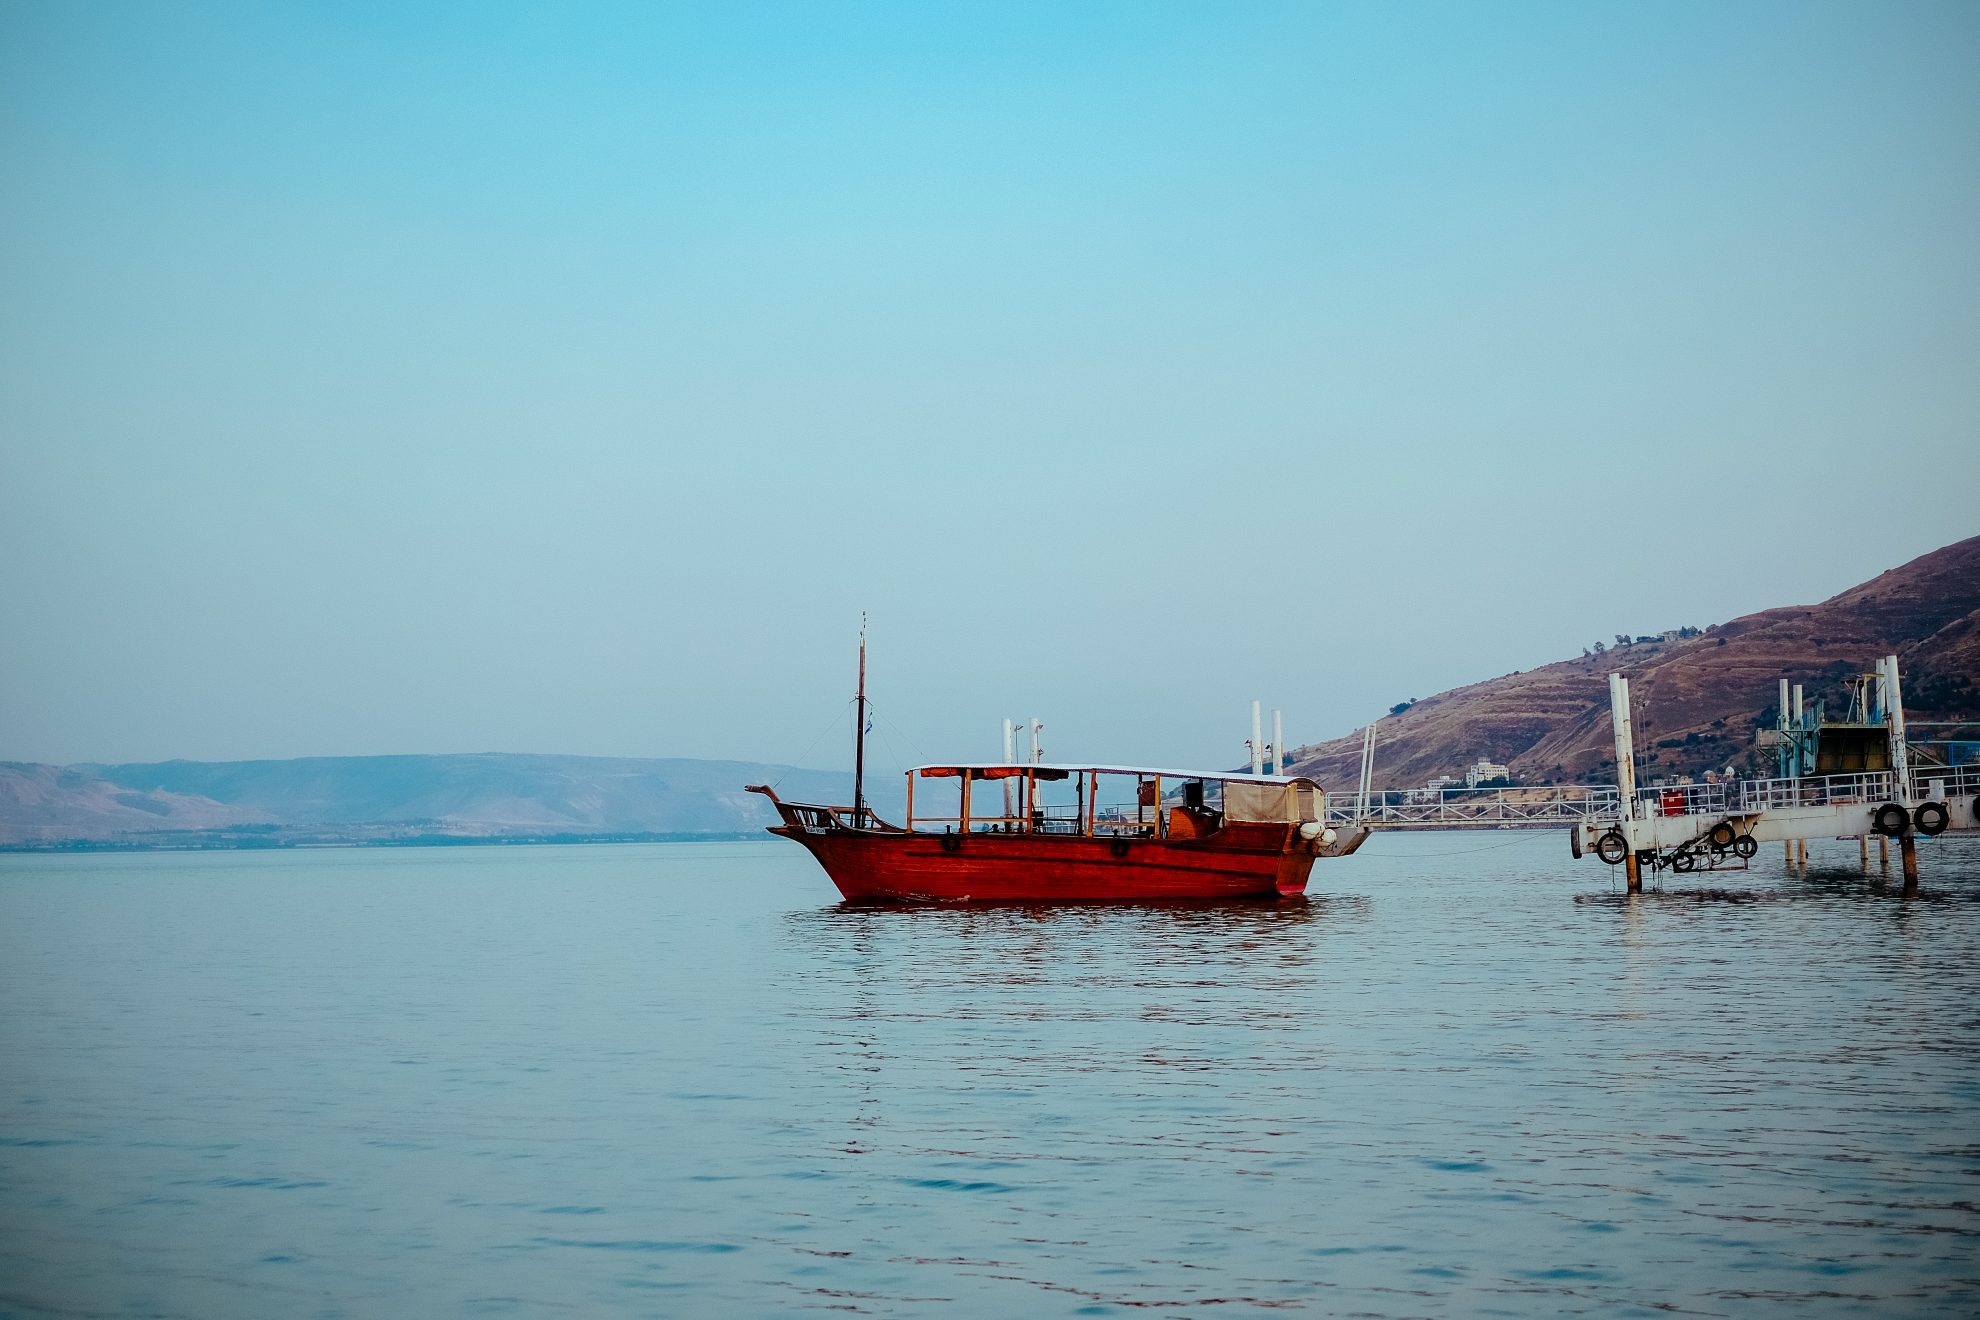 tia lacson sea of galilee israel travel guide